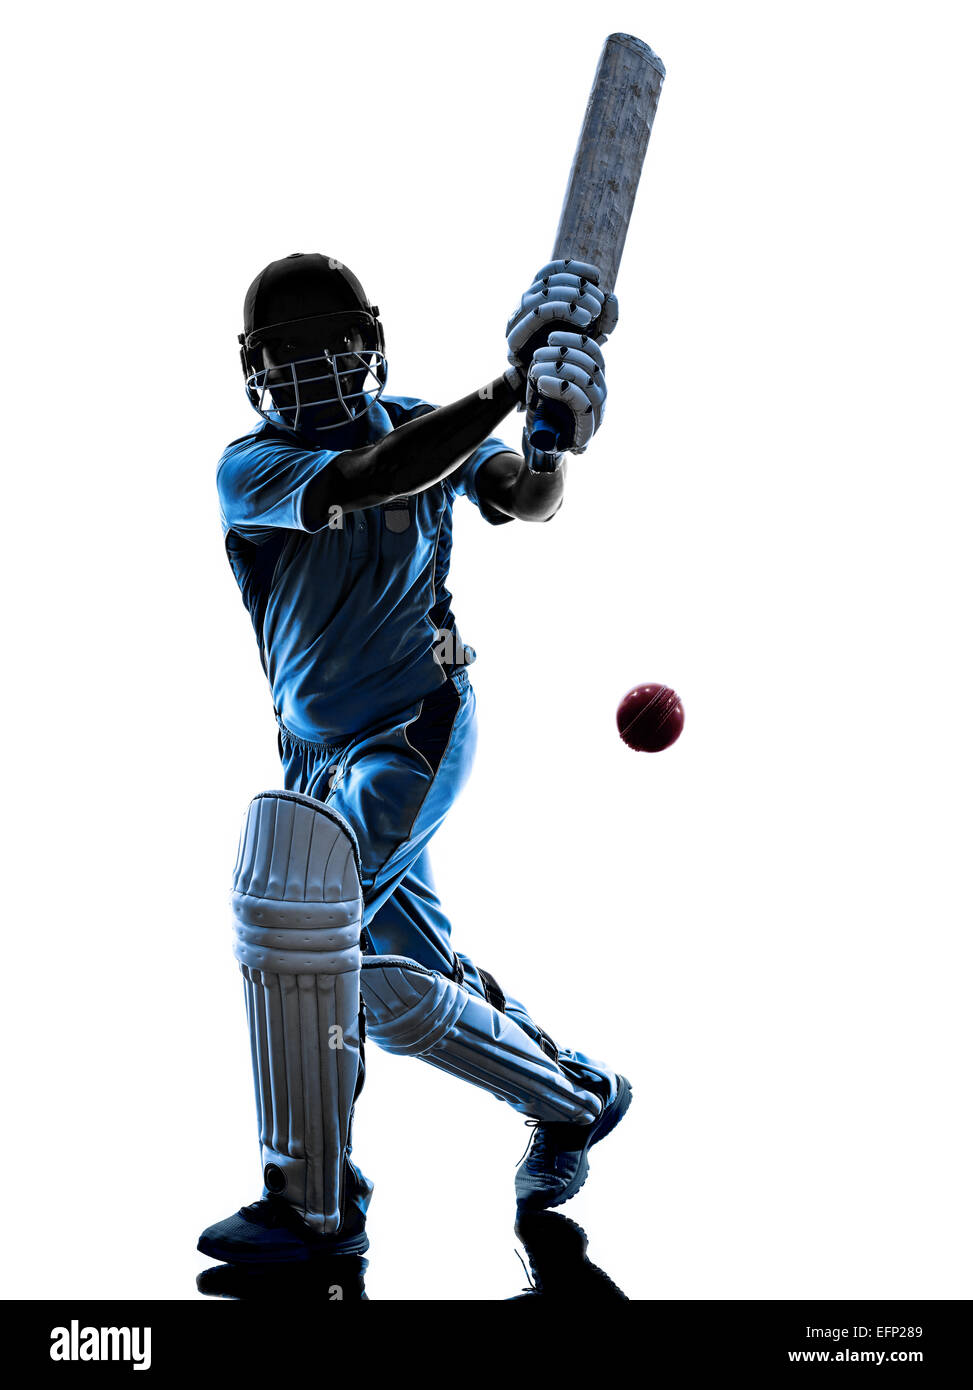 Cricket player batsman in silhouette shadow on white background - Stock Image